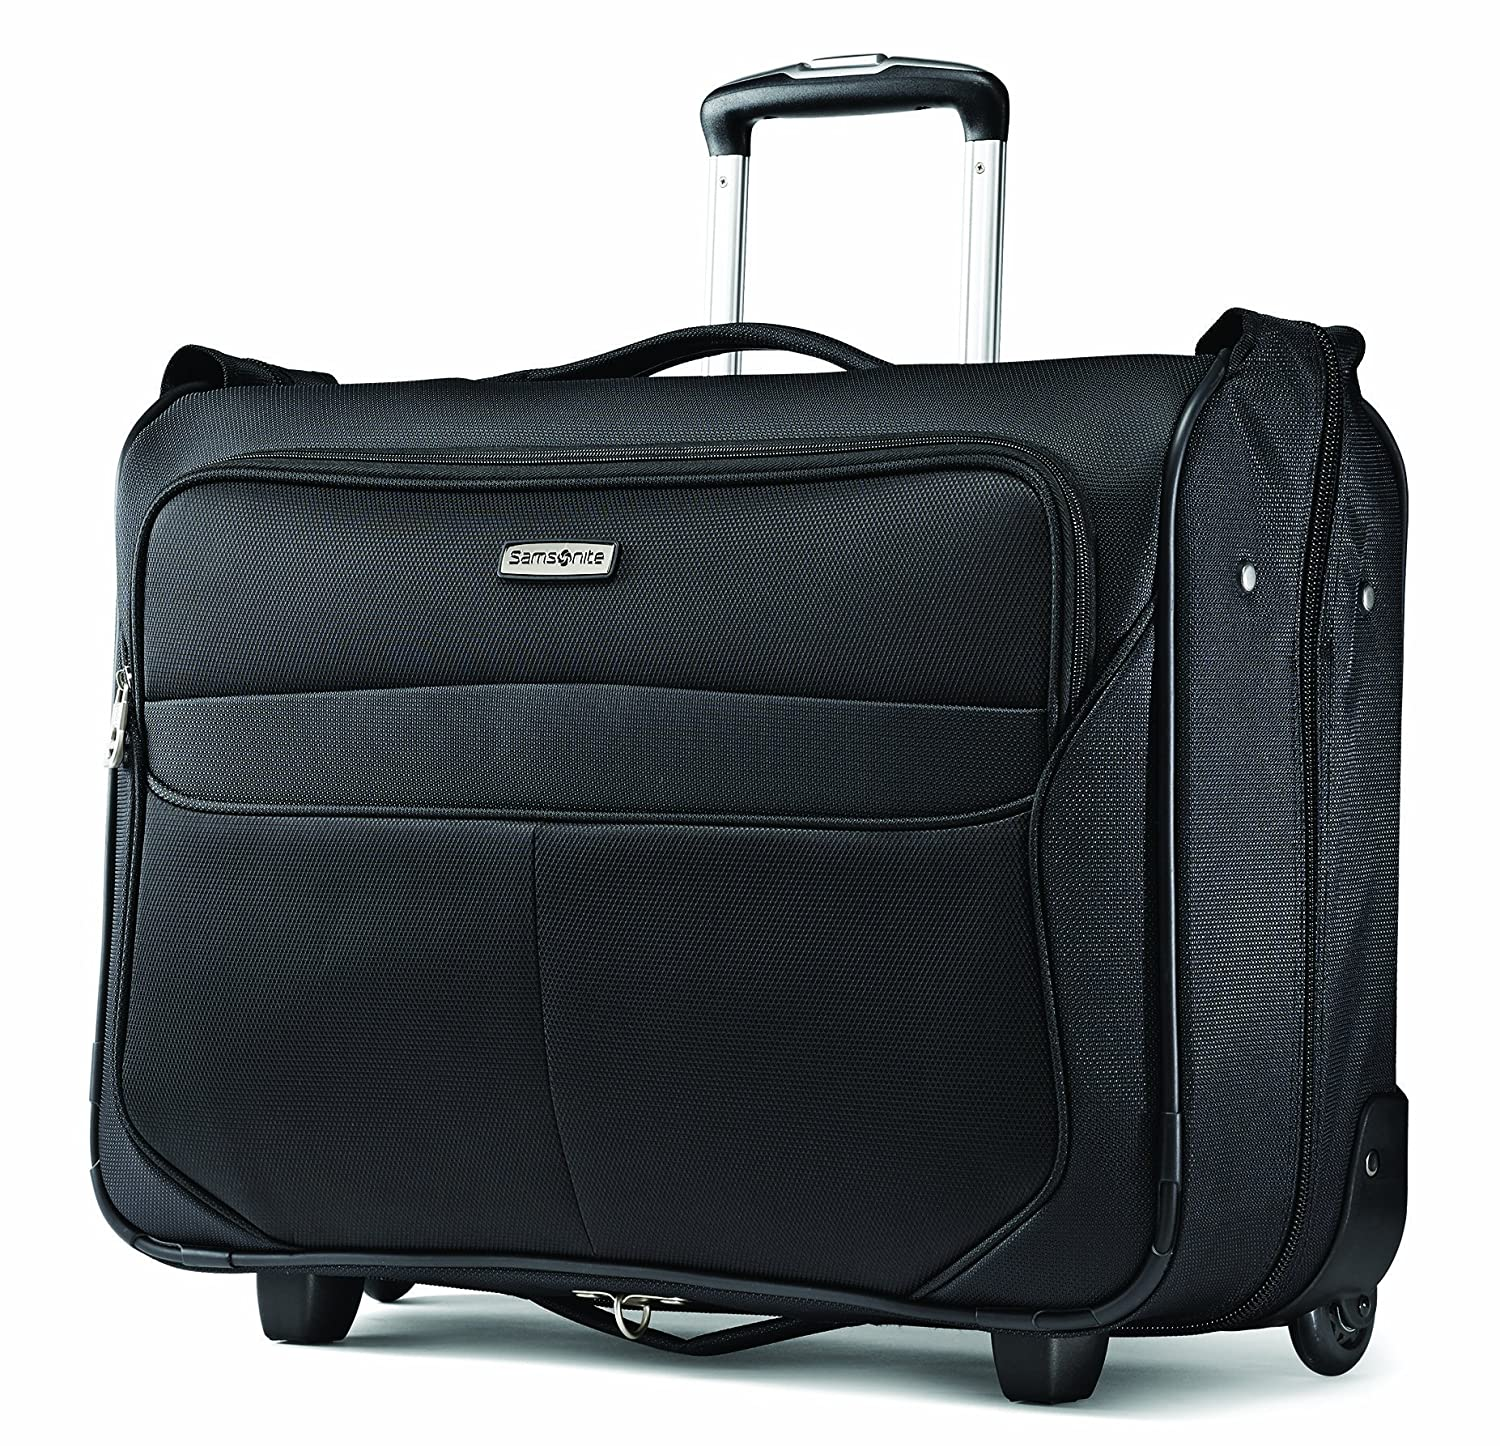 Samsonite Liftwo Carry-on Wheeled Garment Bag, Black, International Carry-on Samsonite Corporation - CA 58749-1041